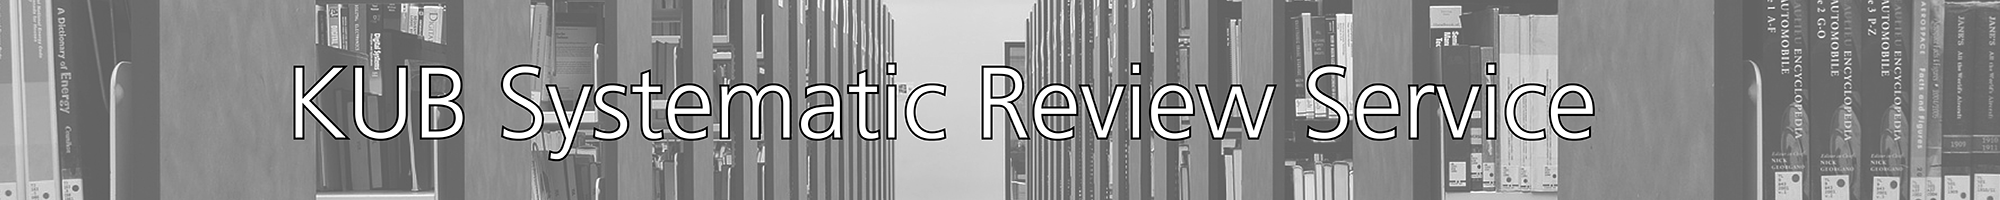 Systematic review service